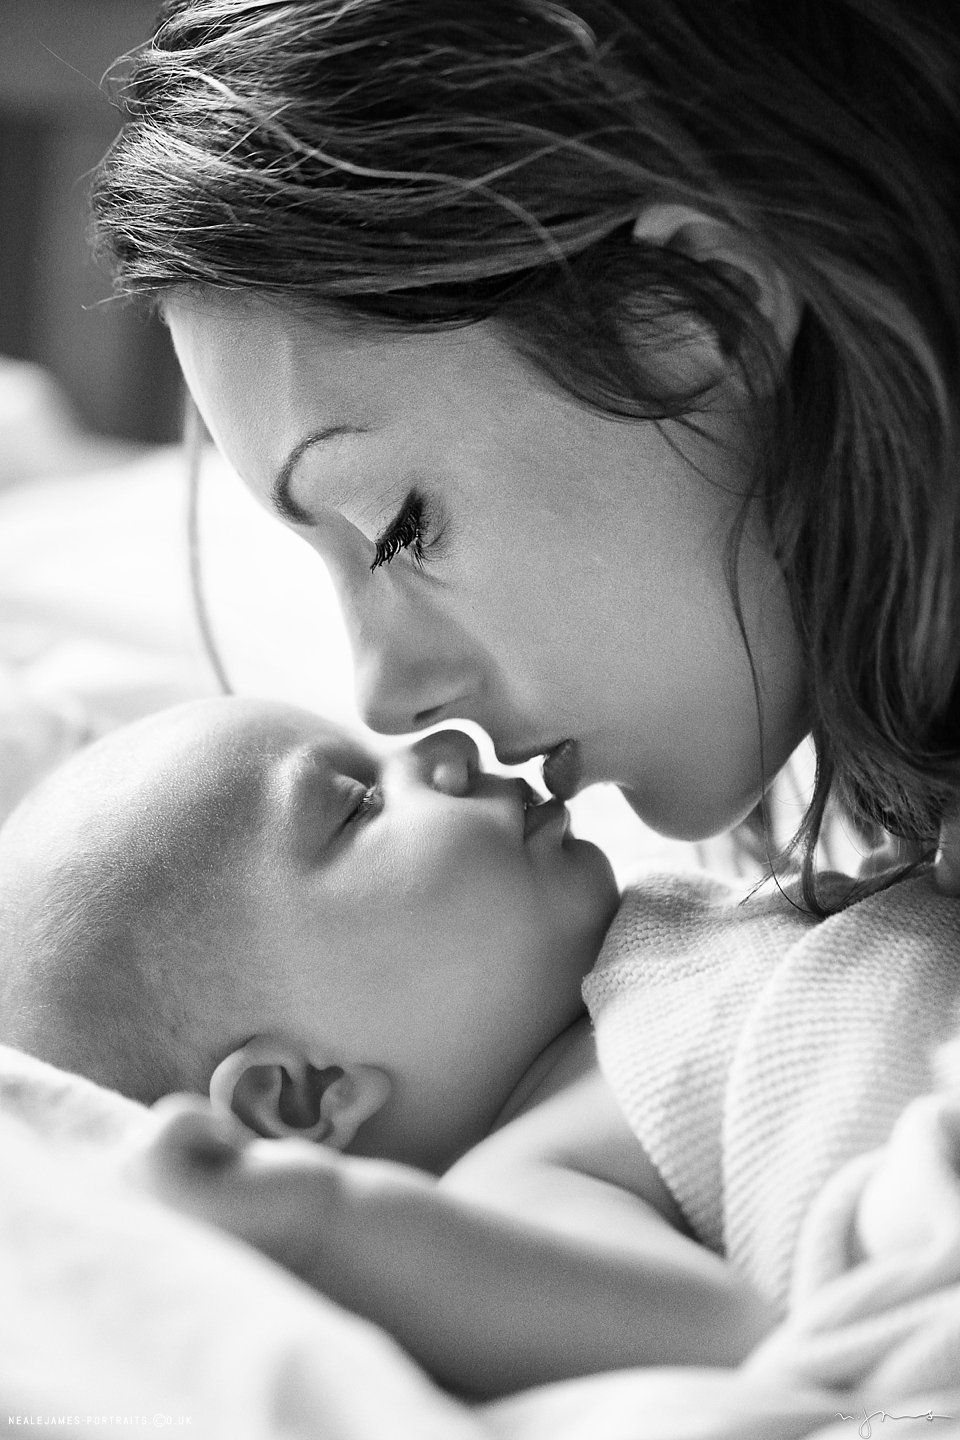 Love Look At The Way Her Profile Perfectly Lines Up With The Babys